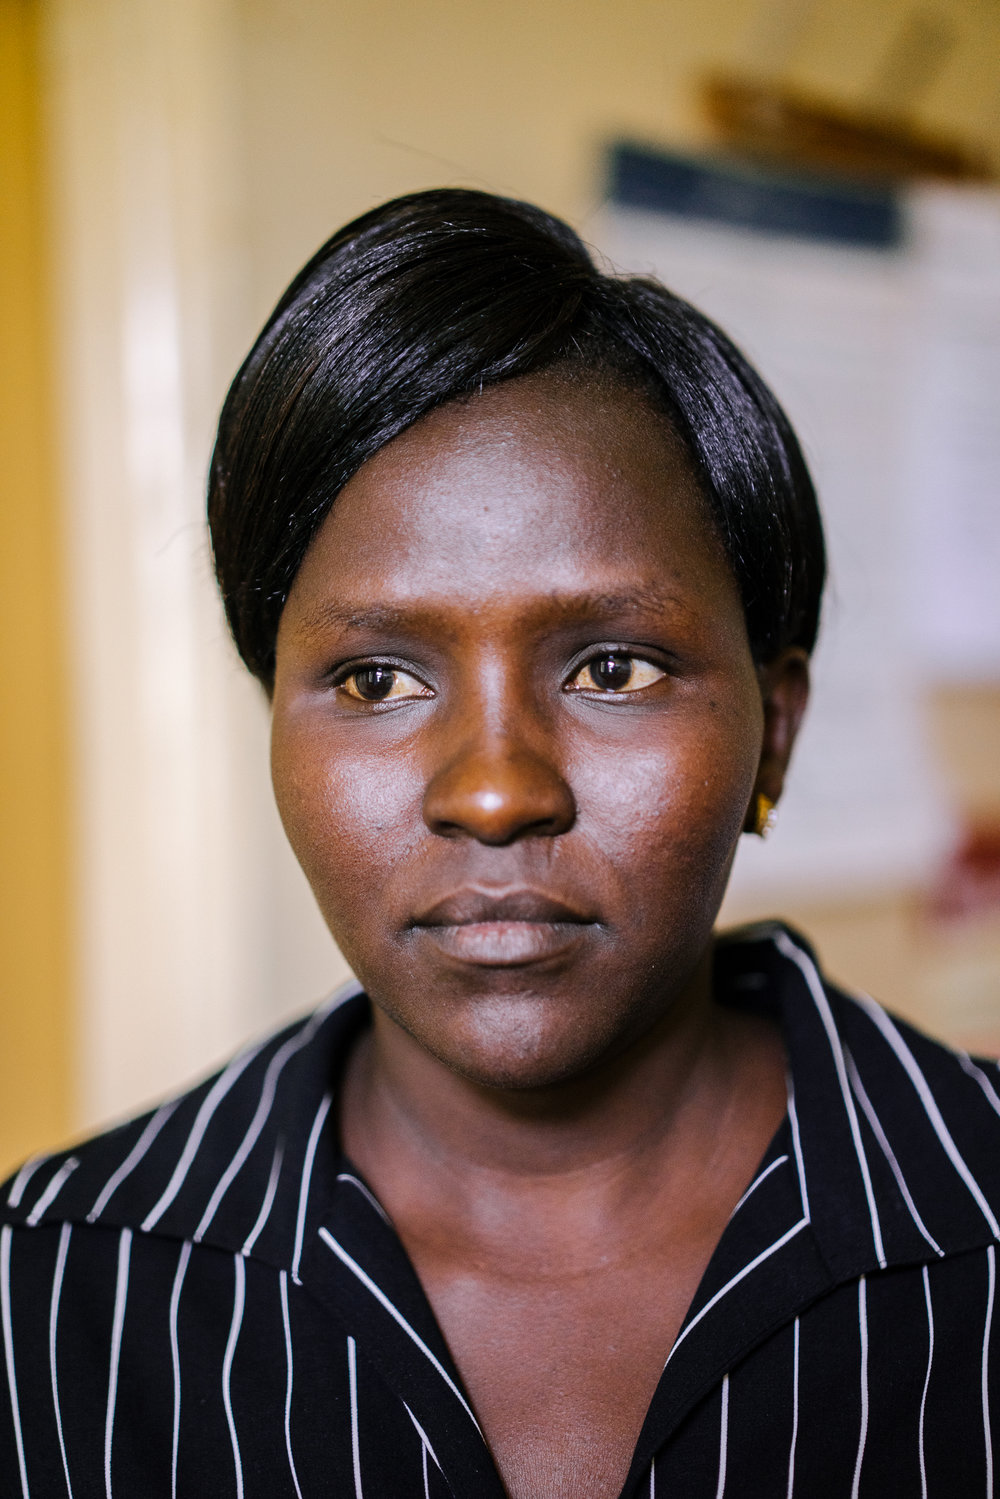 Laura has this woman's name. She is a doctor at the Bumula Health Center and clandestinely provides abortions to women in need, despite the fact that it is illegal to do so.